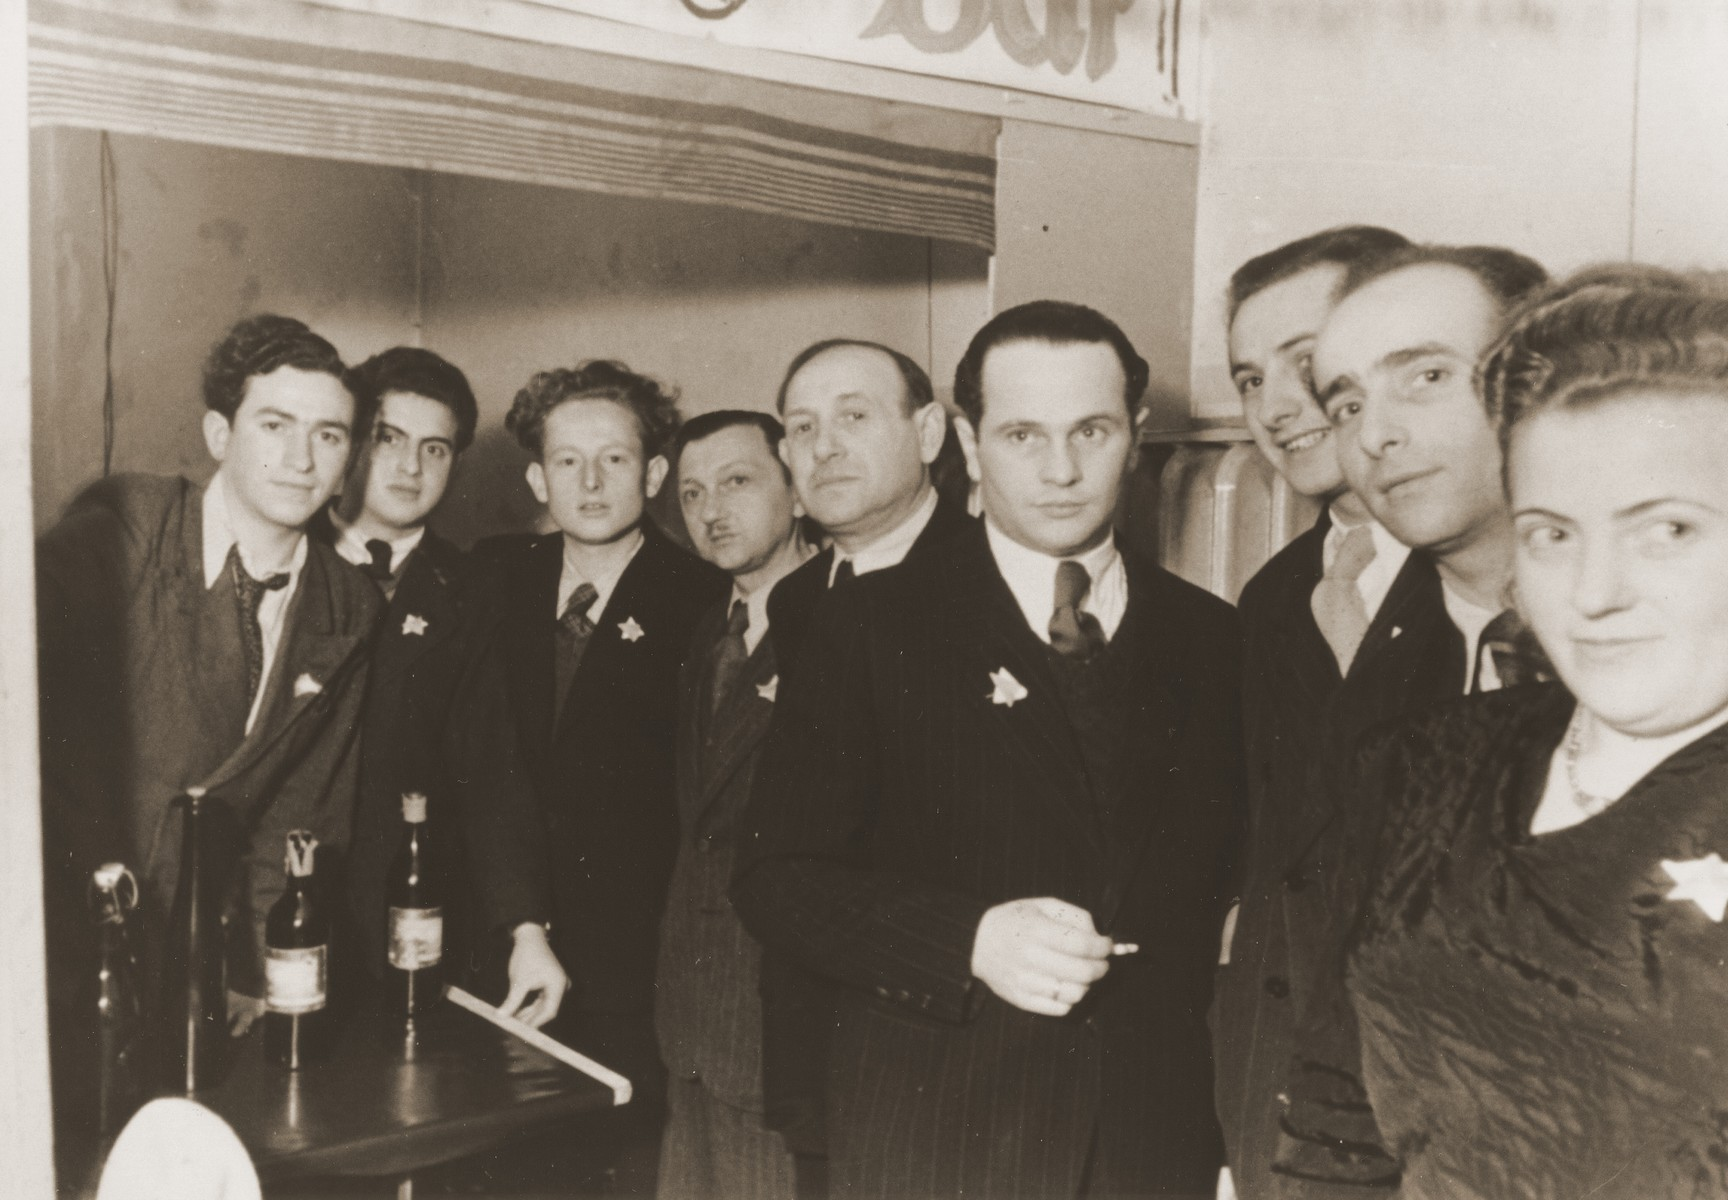 Jewish DPs wear small Jewish stars on their lapels at an engagement party at the Vinnhorst displaced person's center.  Included in the photograph are Israel Zaks, Mietek Zawadzki and Nathan Teichner.  Frieda Altman ( maiden name Lerner) is standing next to her husband,  Morris Altman.